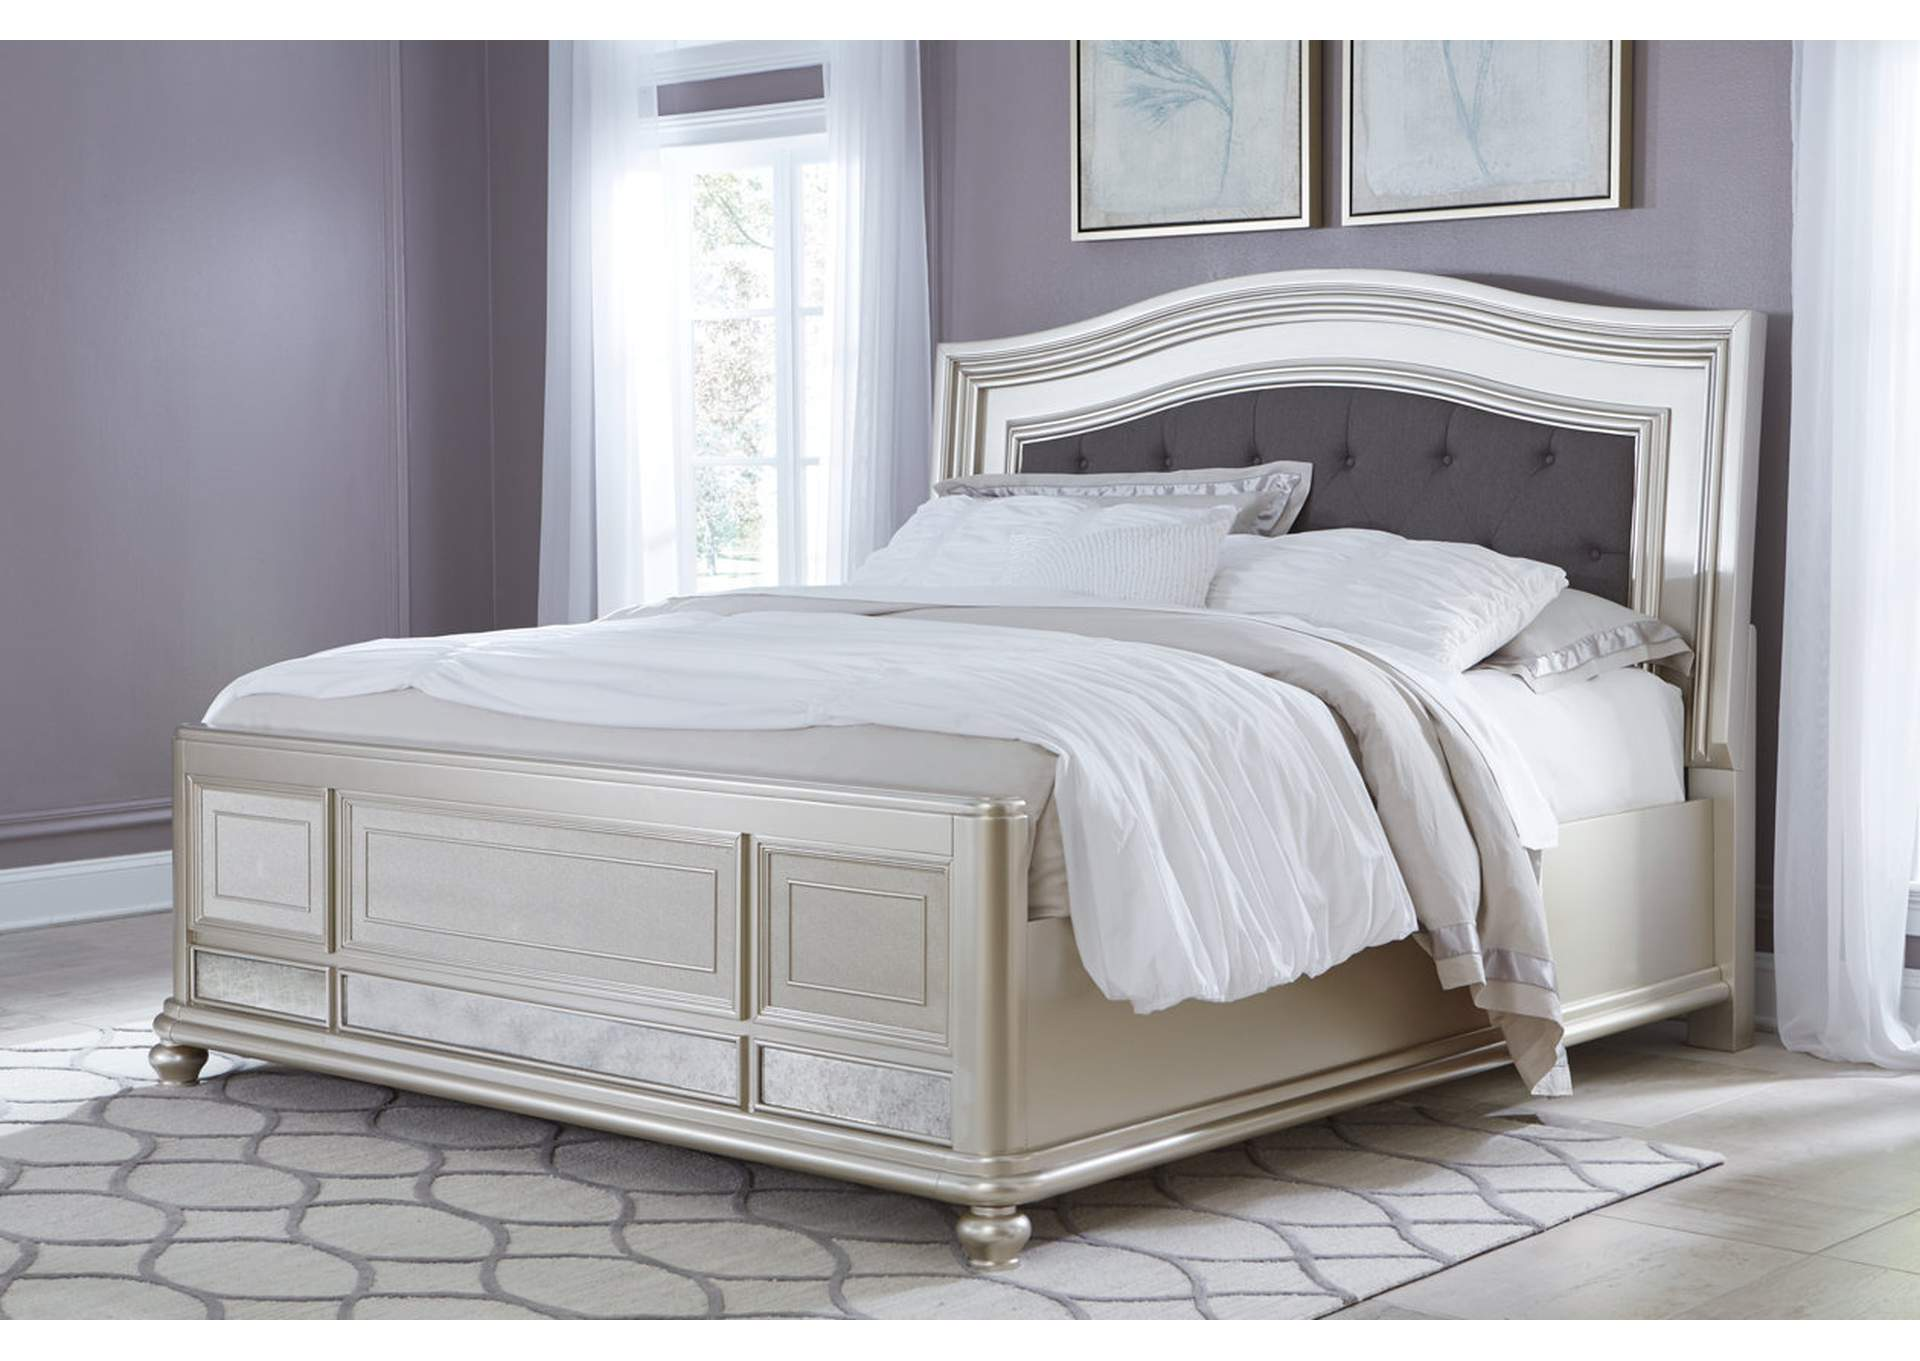 Coralayne Upholstered California King Bed,Signature Design By Ashley